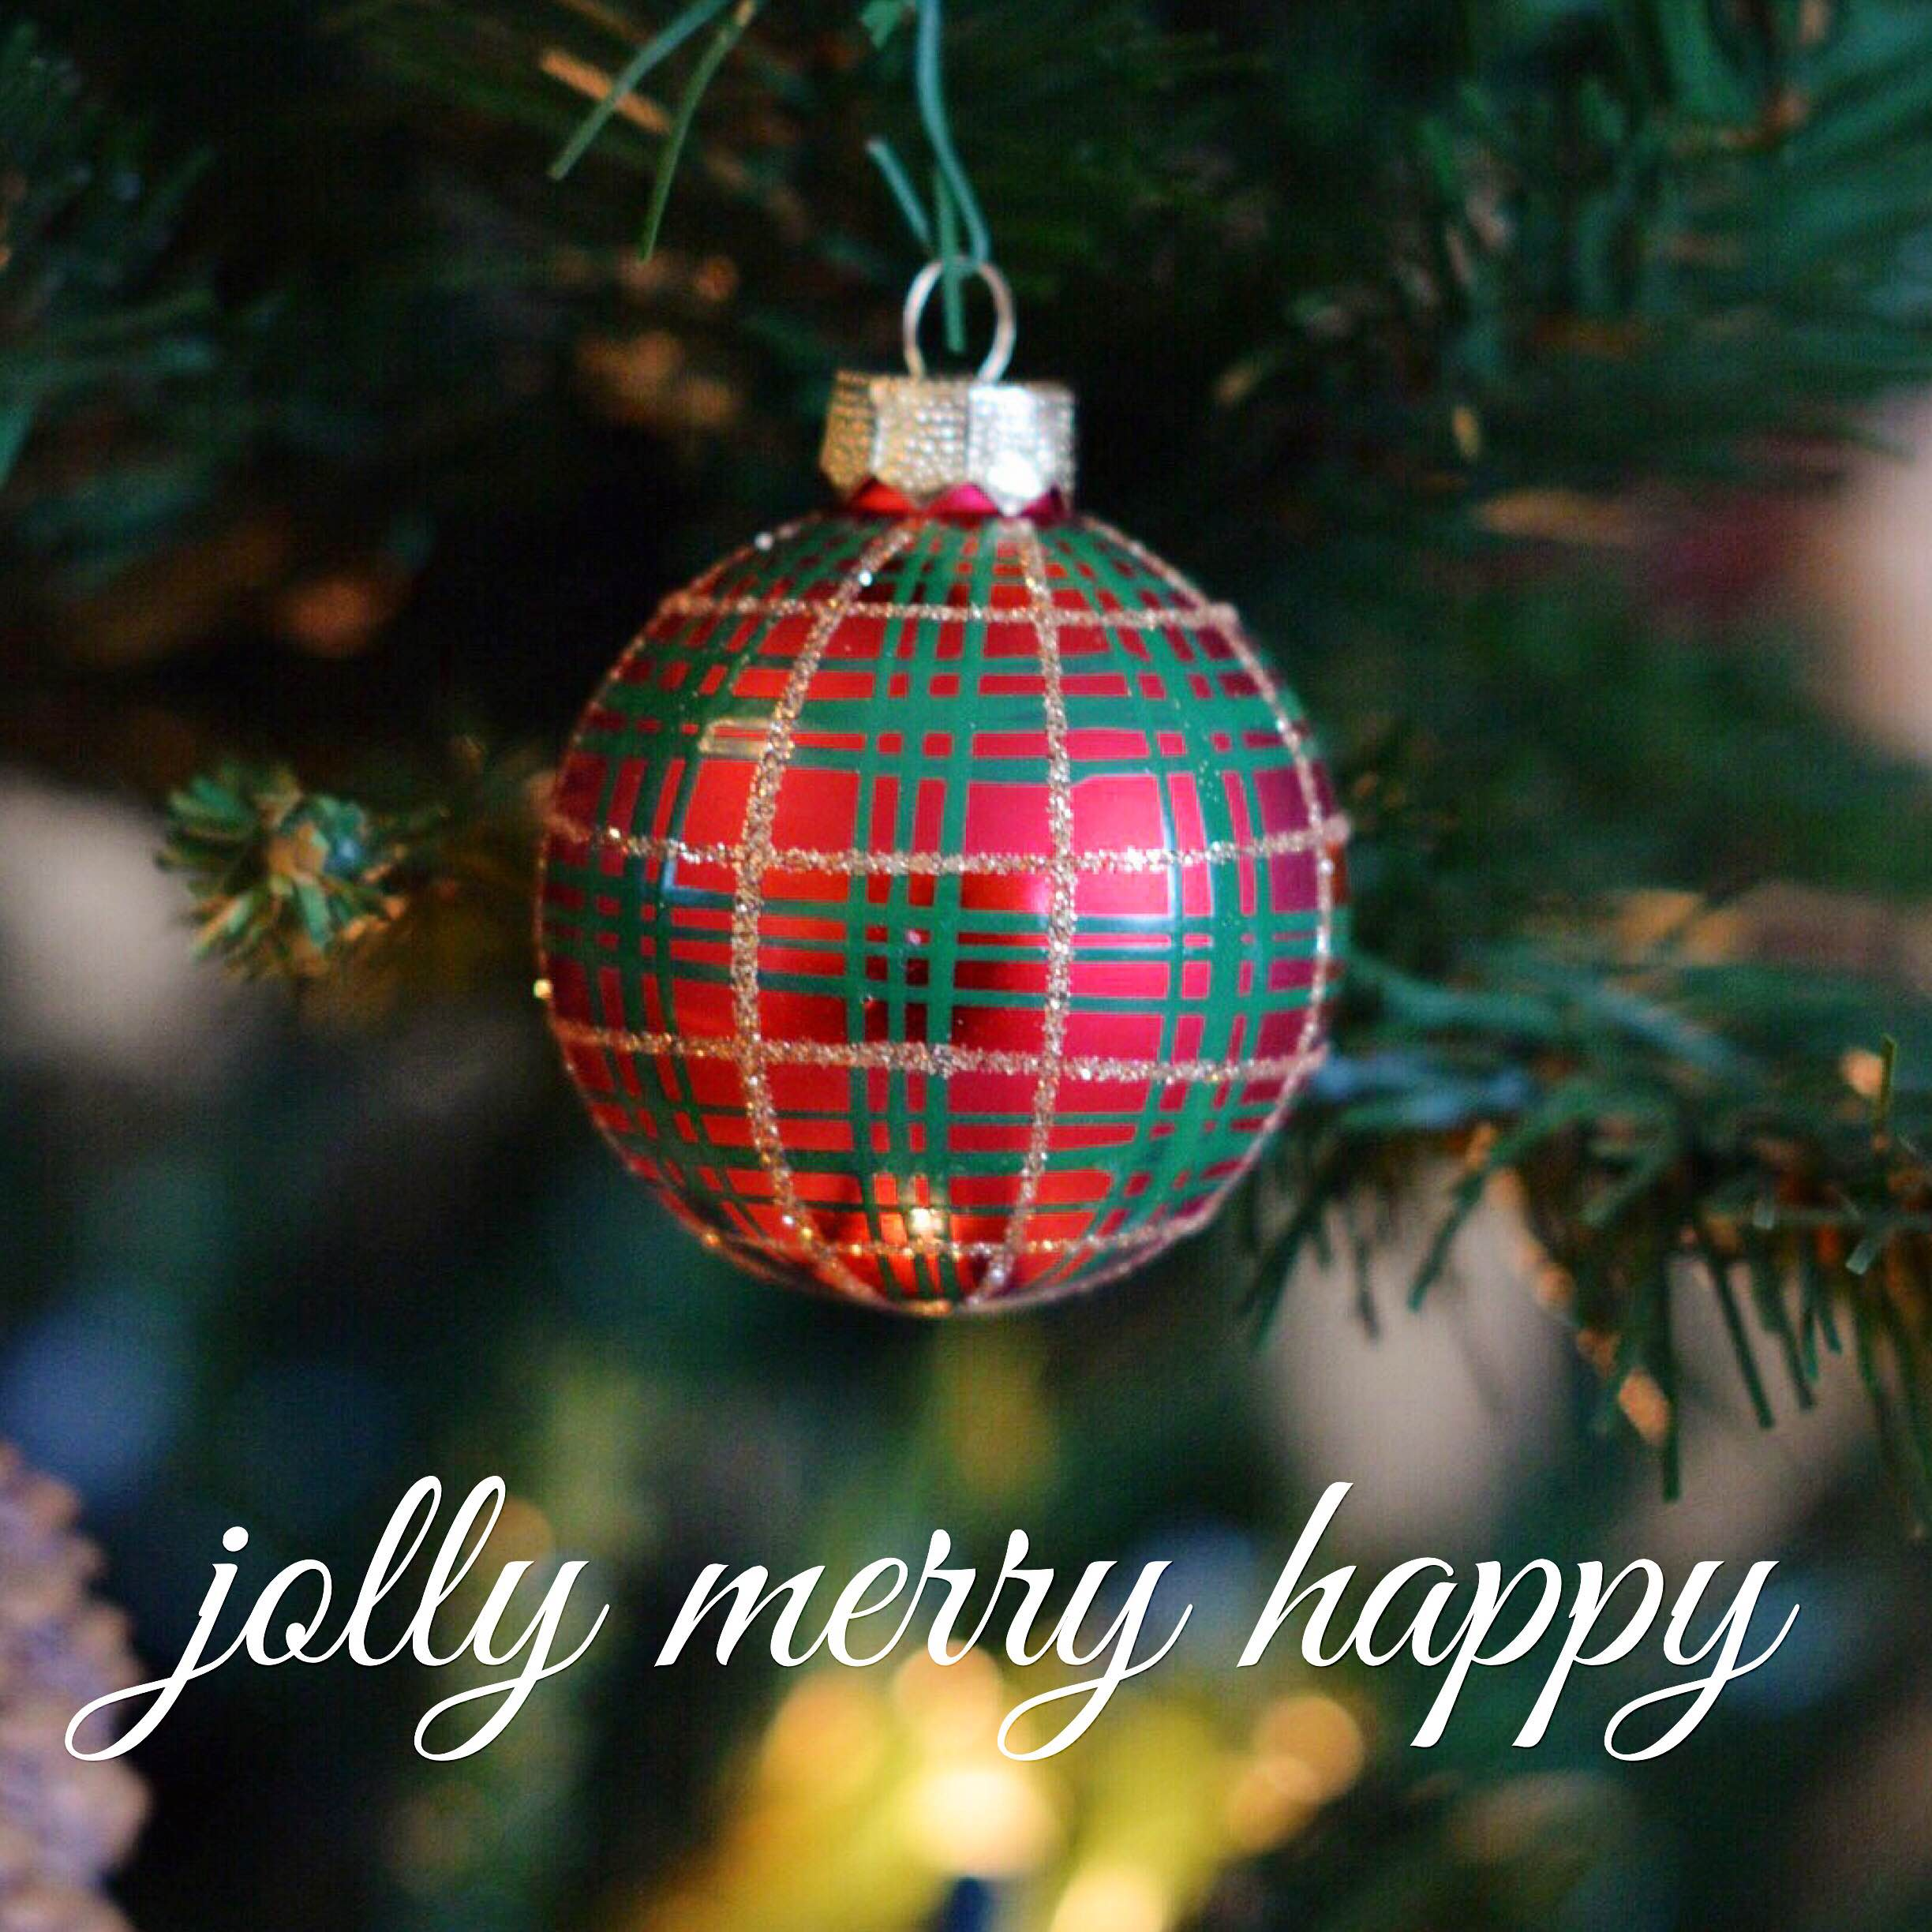 merry-jolly-happy